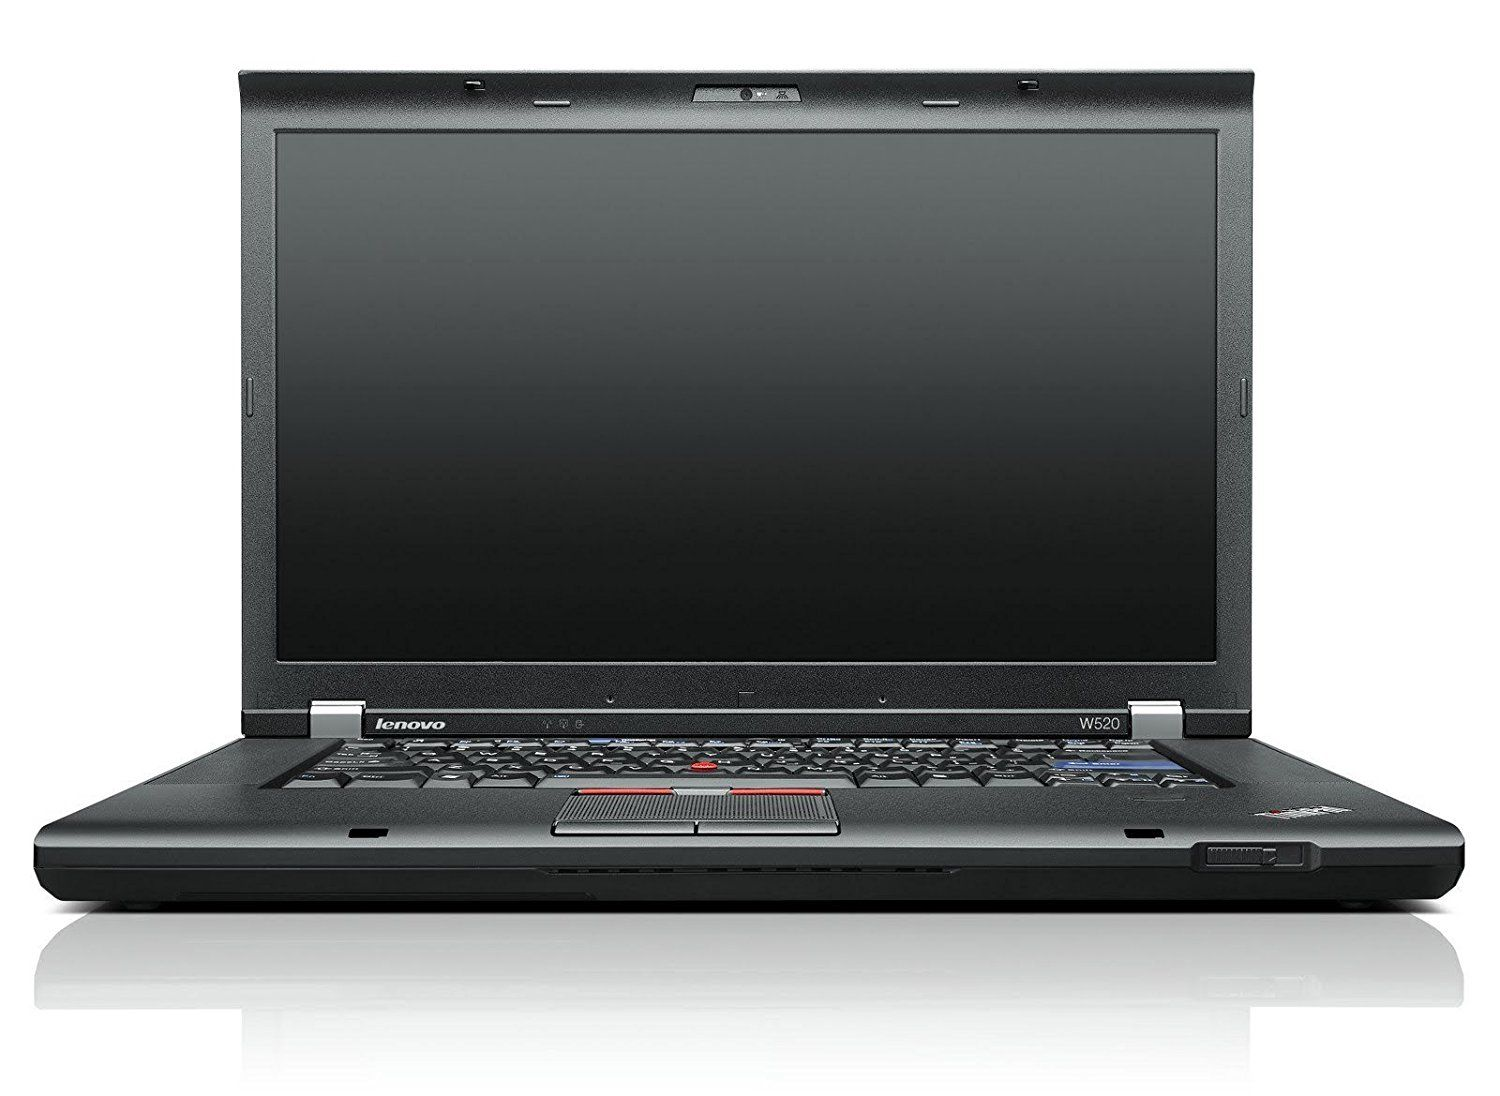 """Lenovo ThinkPad W520 Laptop 15.6"""" 1080p i7 Quad-Core 2.2GHz 8GB 500GB Nvidia Quadro 1000M   this is a powerful computer equipped with capable processor and dedicated graphics card to allow Read  more http://themarketplacespot.com/lenovo-thinkpad-w520-laptop-15-6-1080p-i7-quad-core-2-2ghz-8gb-500gb-nvidia-quadro-1000m/"""